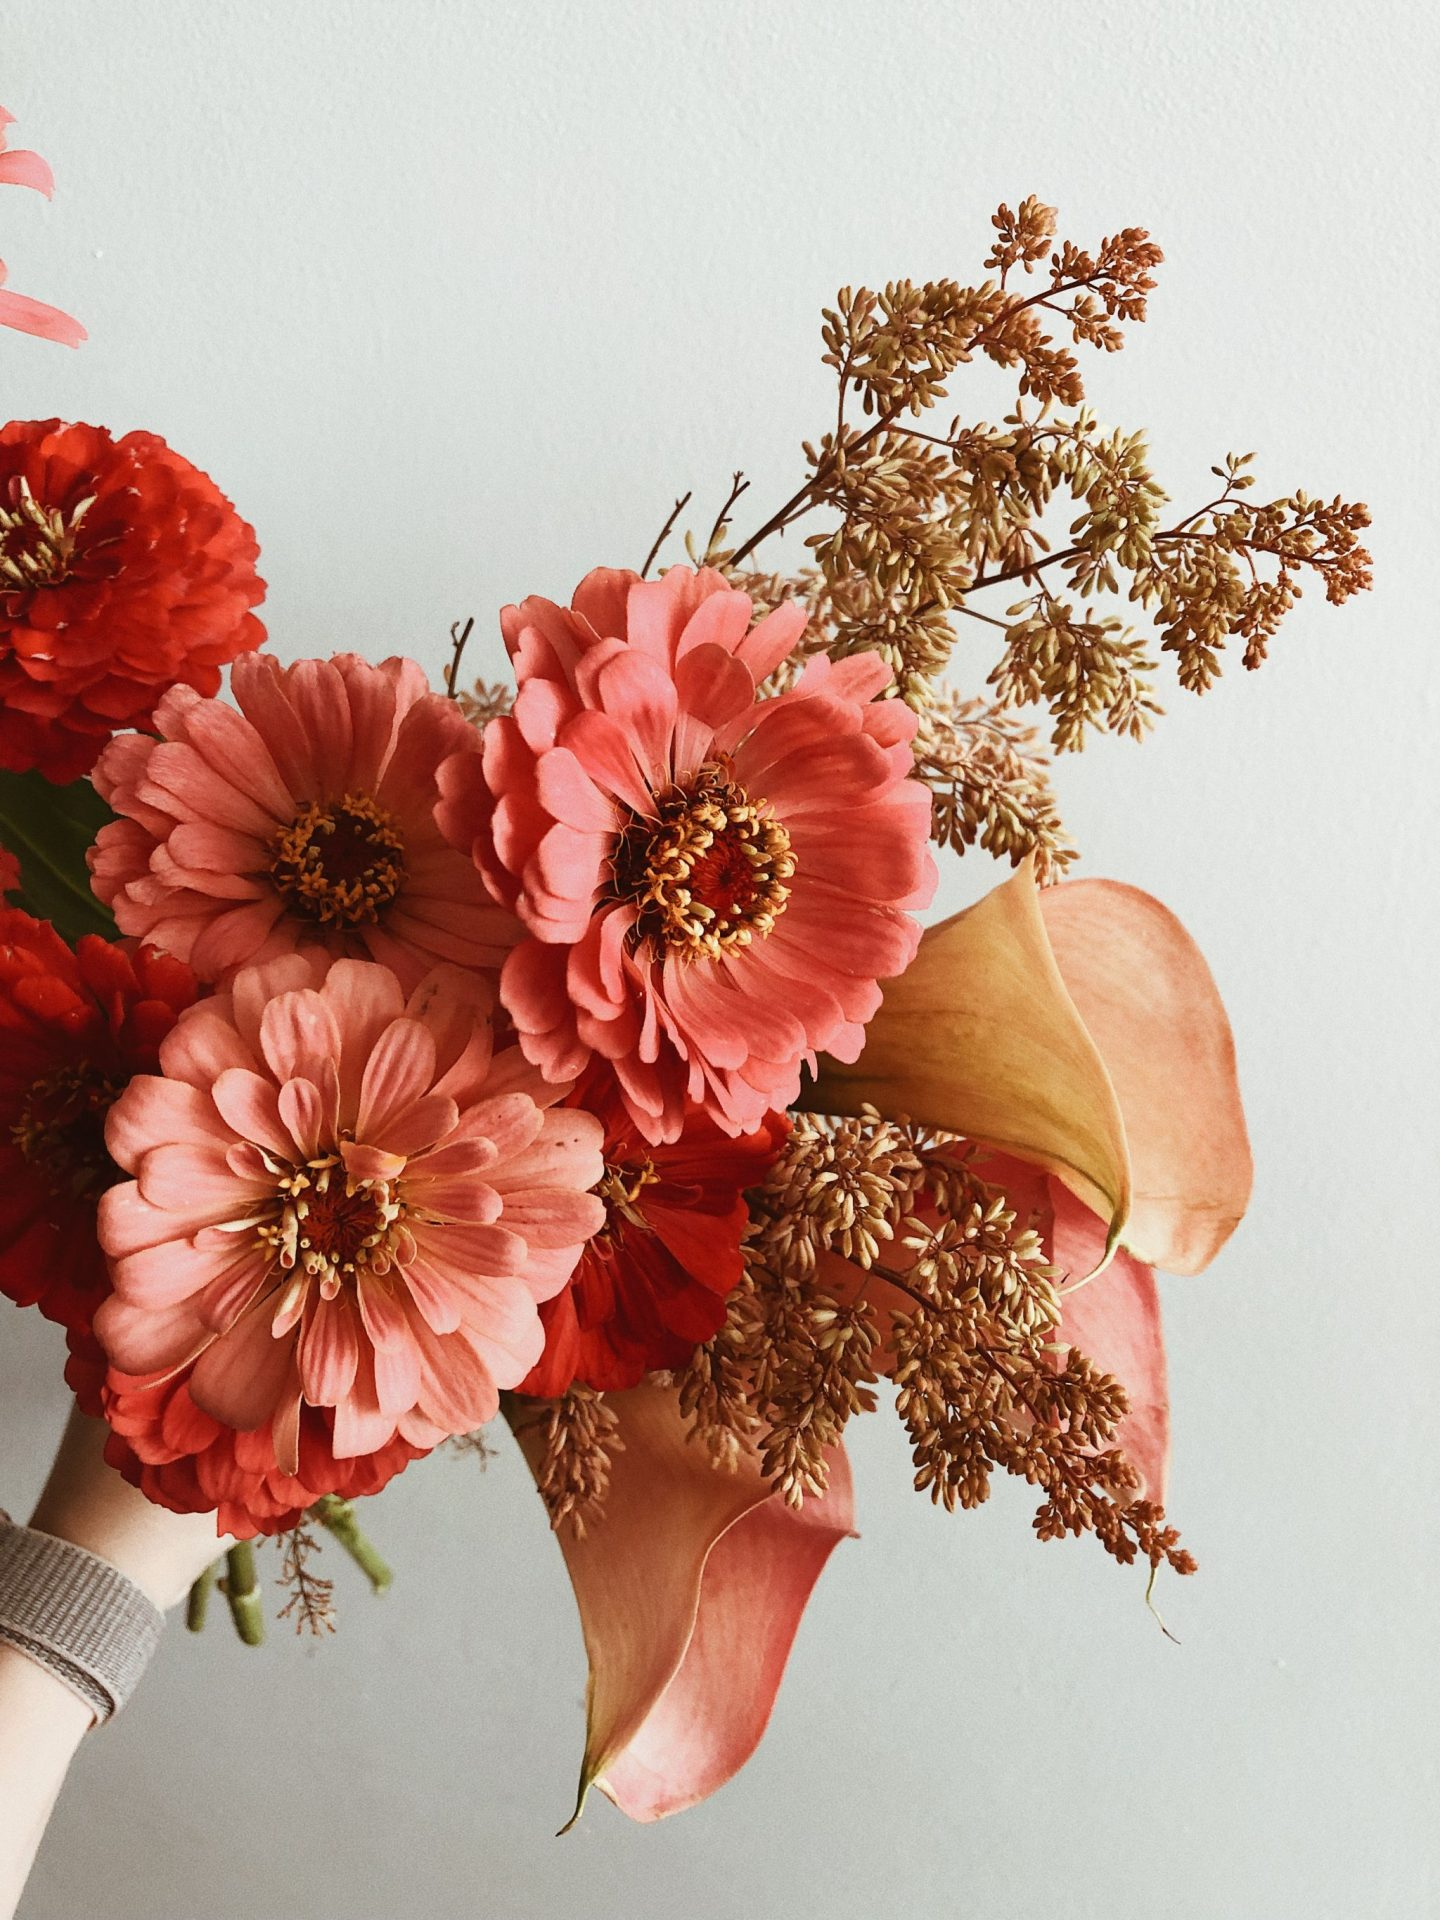 A GUIDE TO ORDERING FLOWERS ONLINE